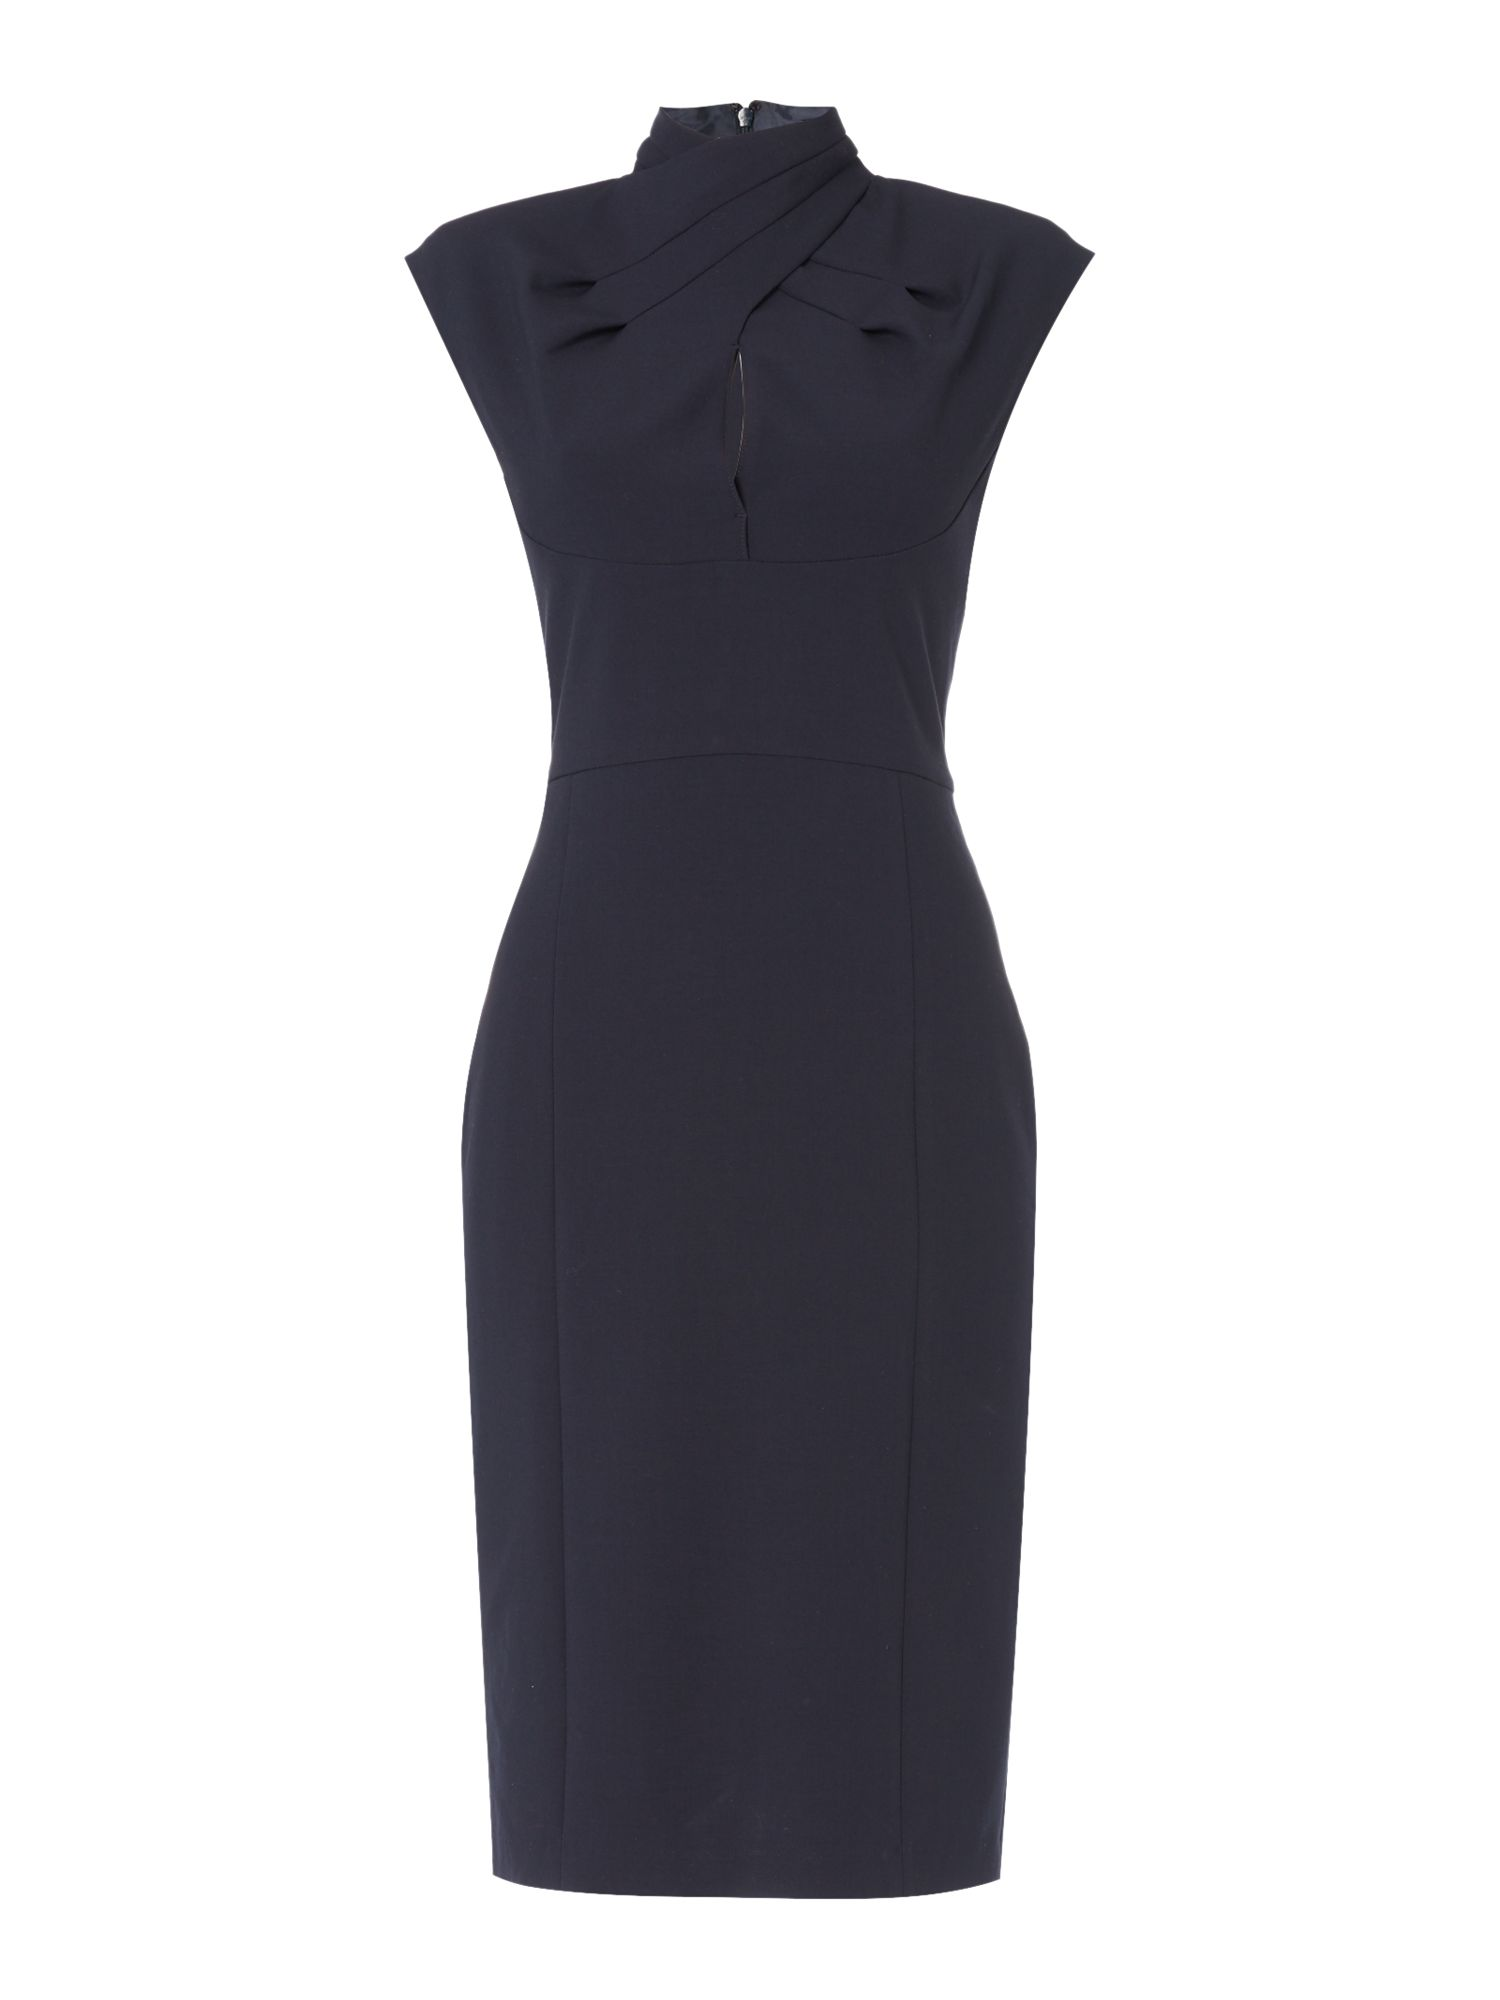 IVY & OAK Ivy & Oak Pencil skirt dress with wrap neck and cap sleeves, Midnight Blue